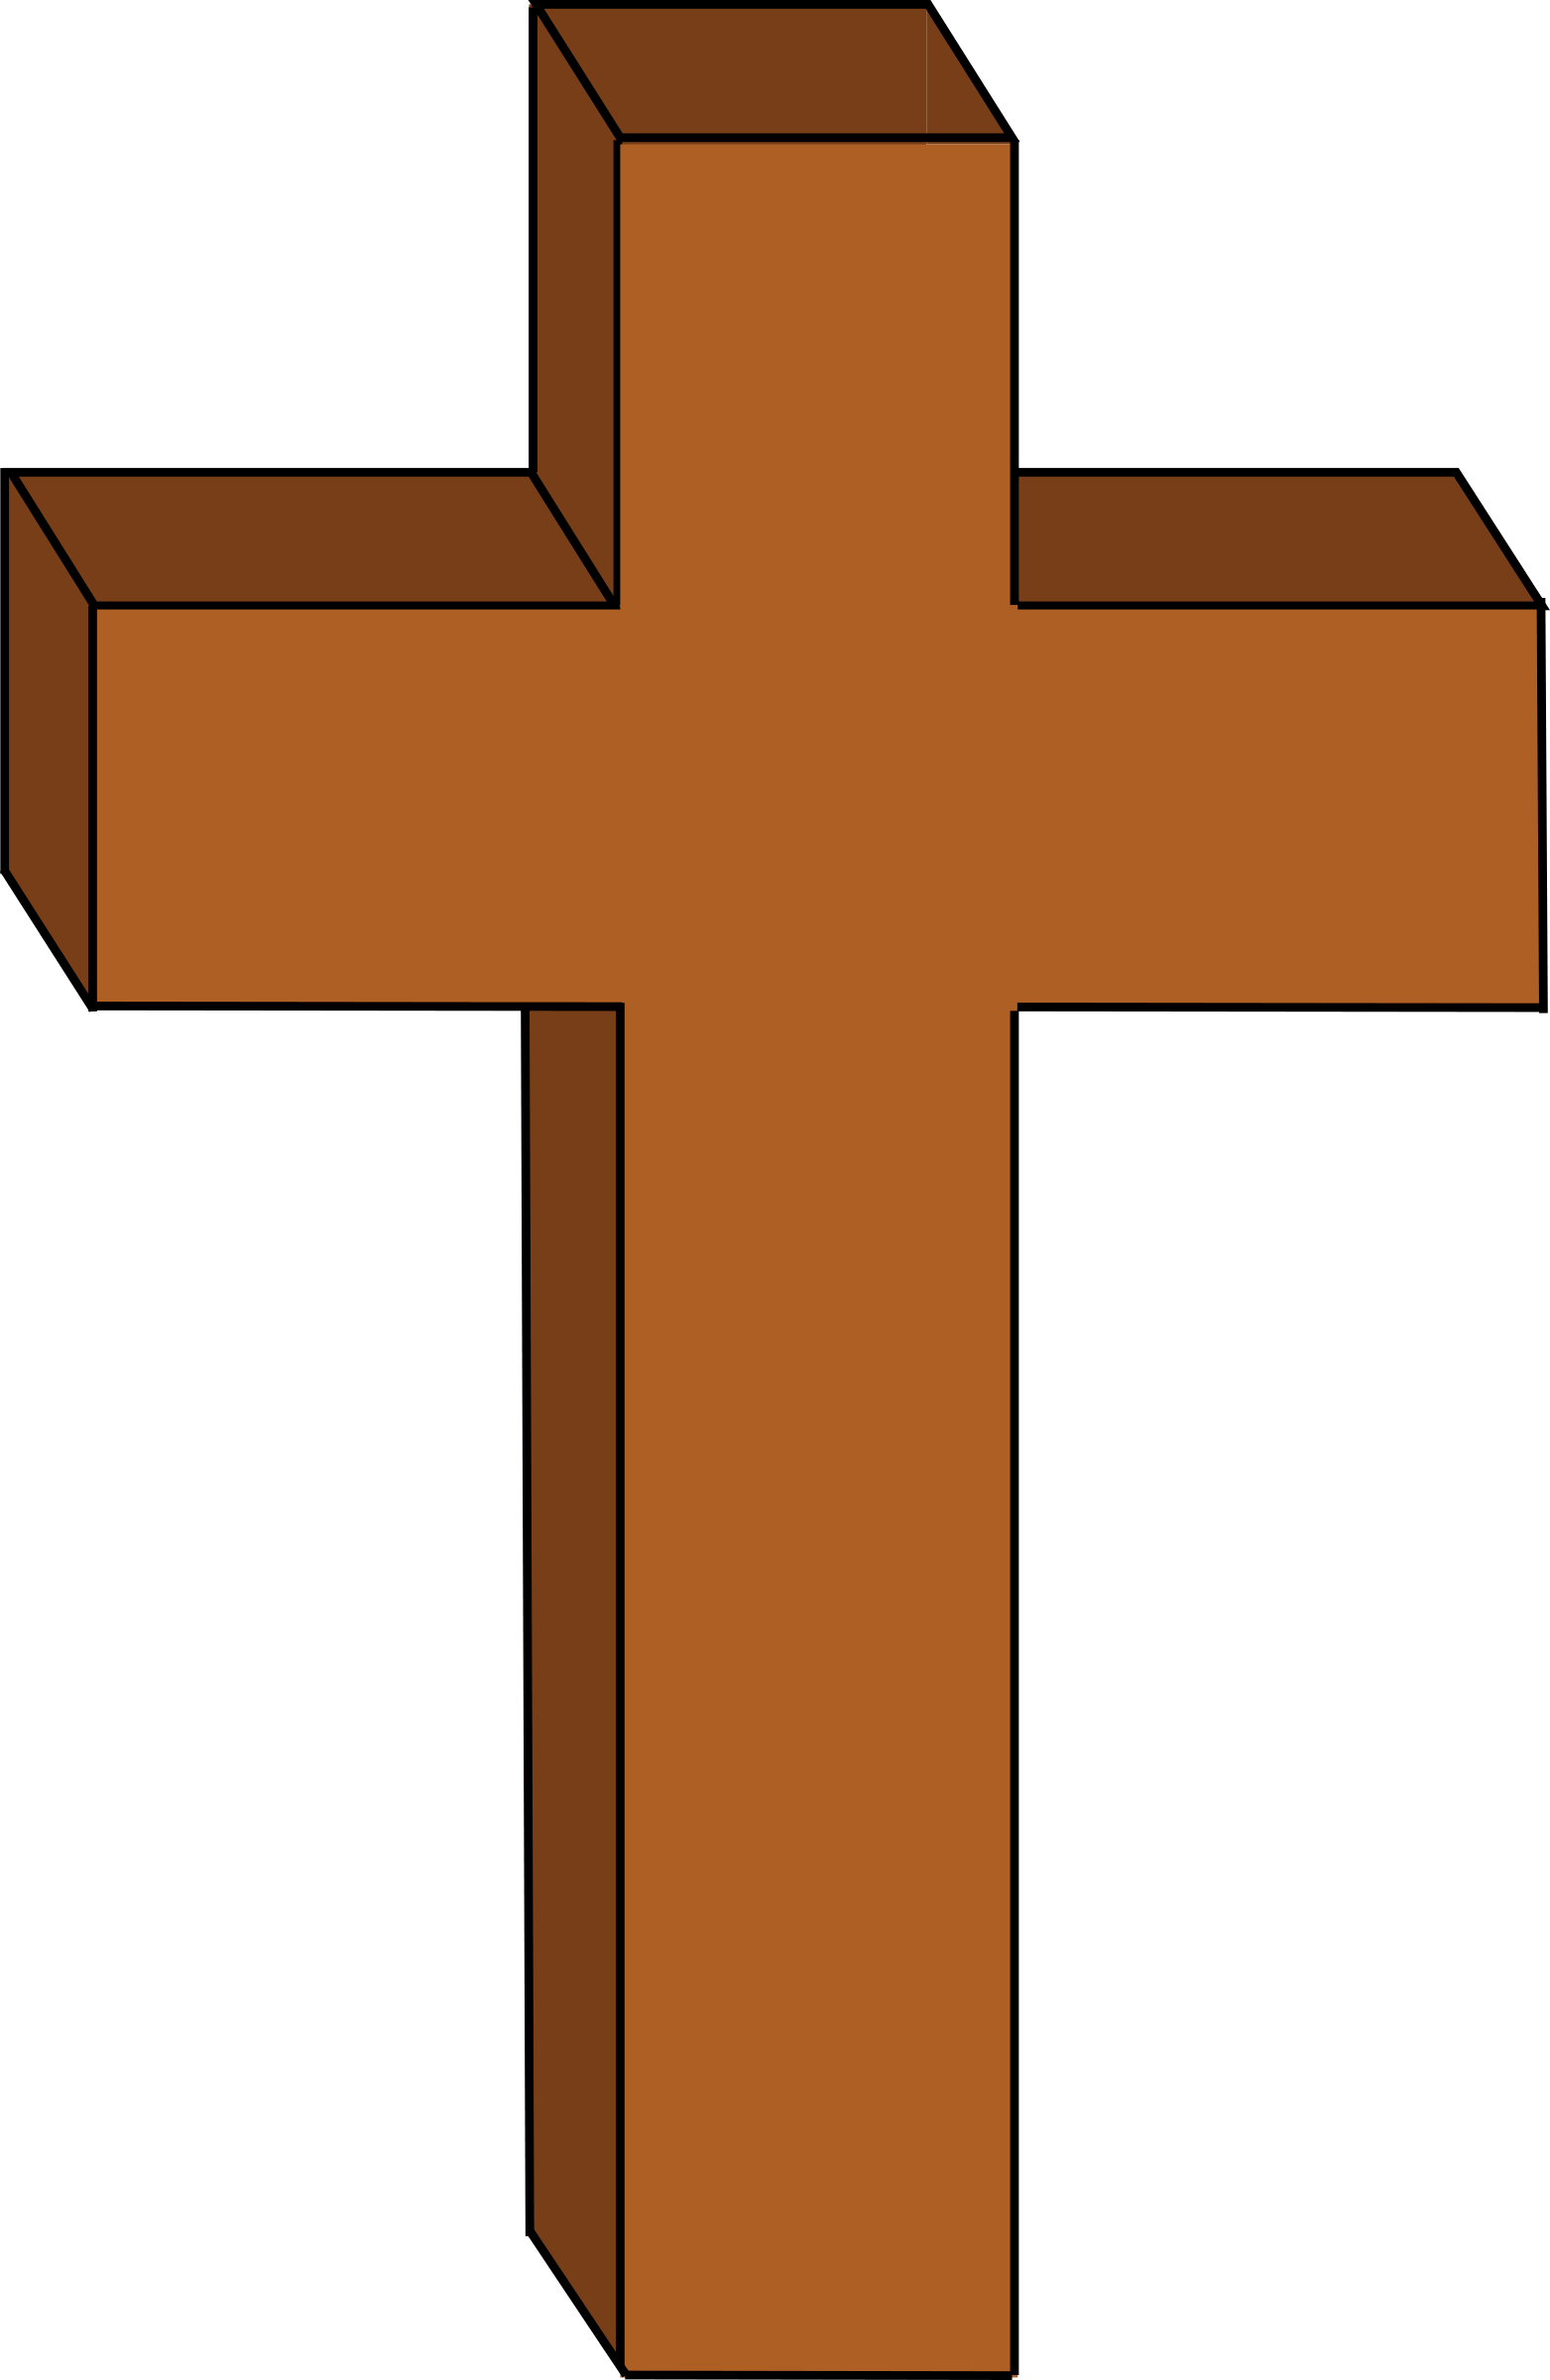 Brown cliparts zone png. Crucifix cross clipart